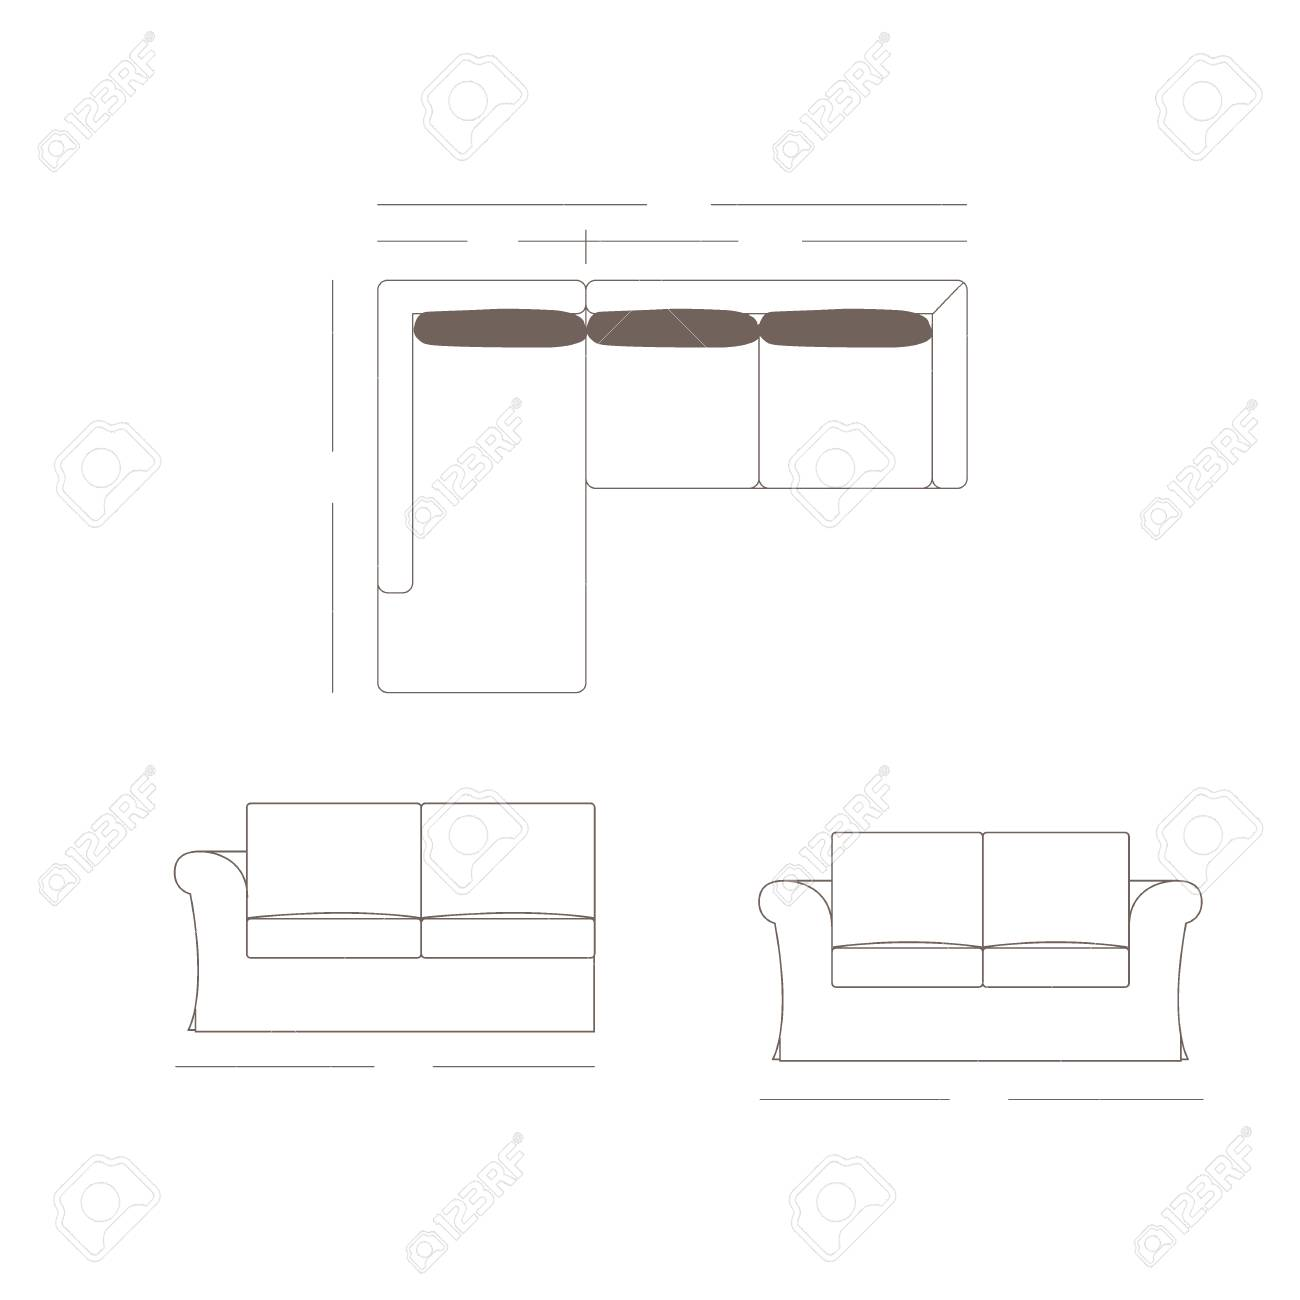 Outline Illustration Of The Couch Plan Stock Photo Picture And